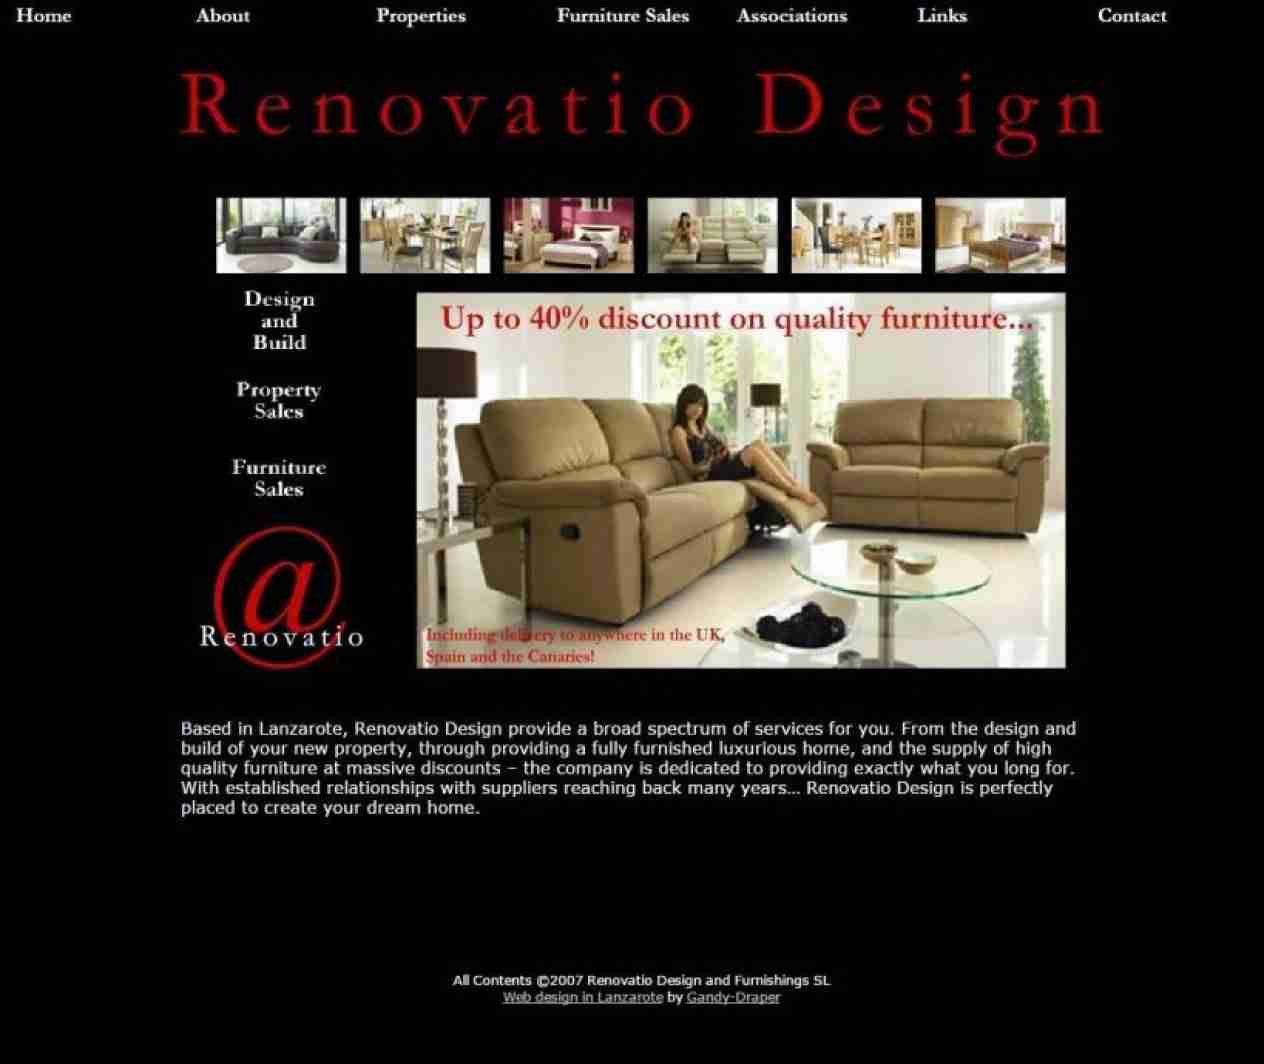 Renovatio Design